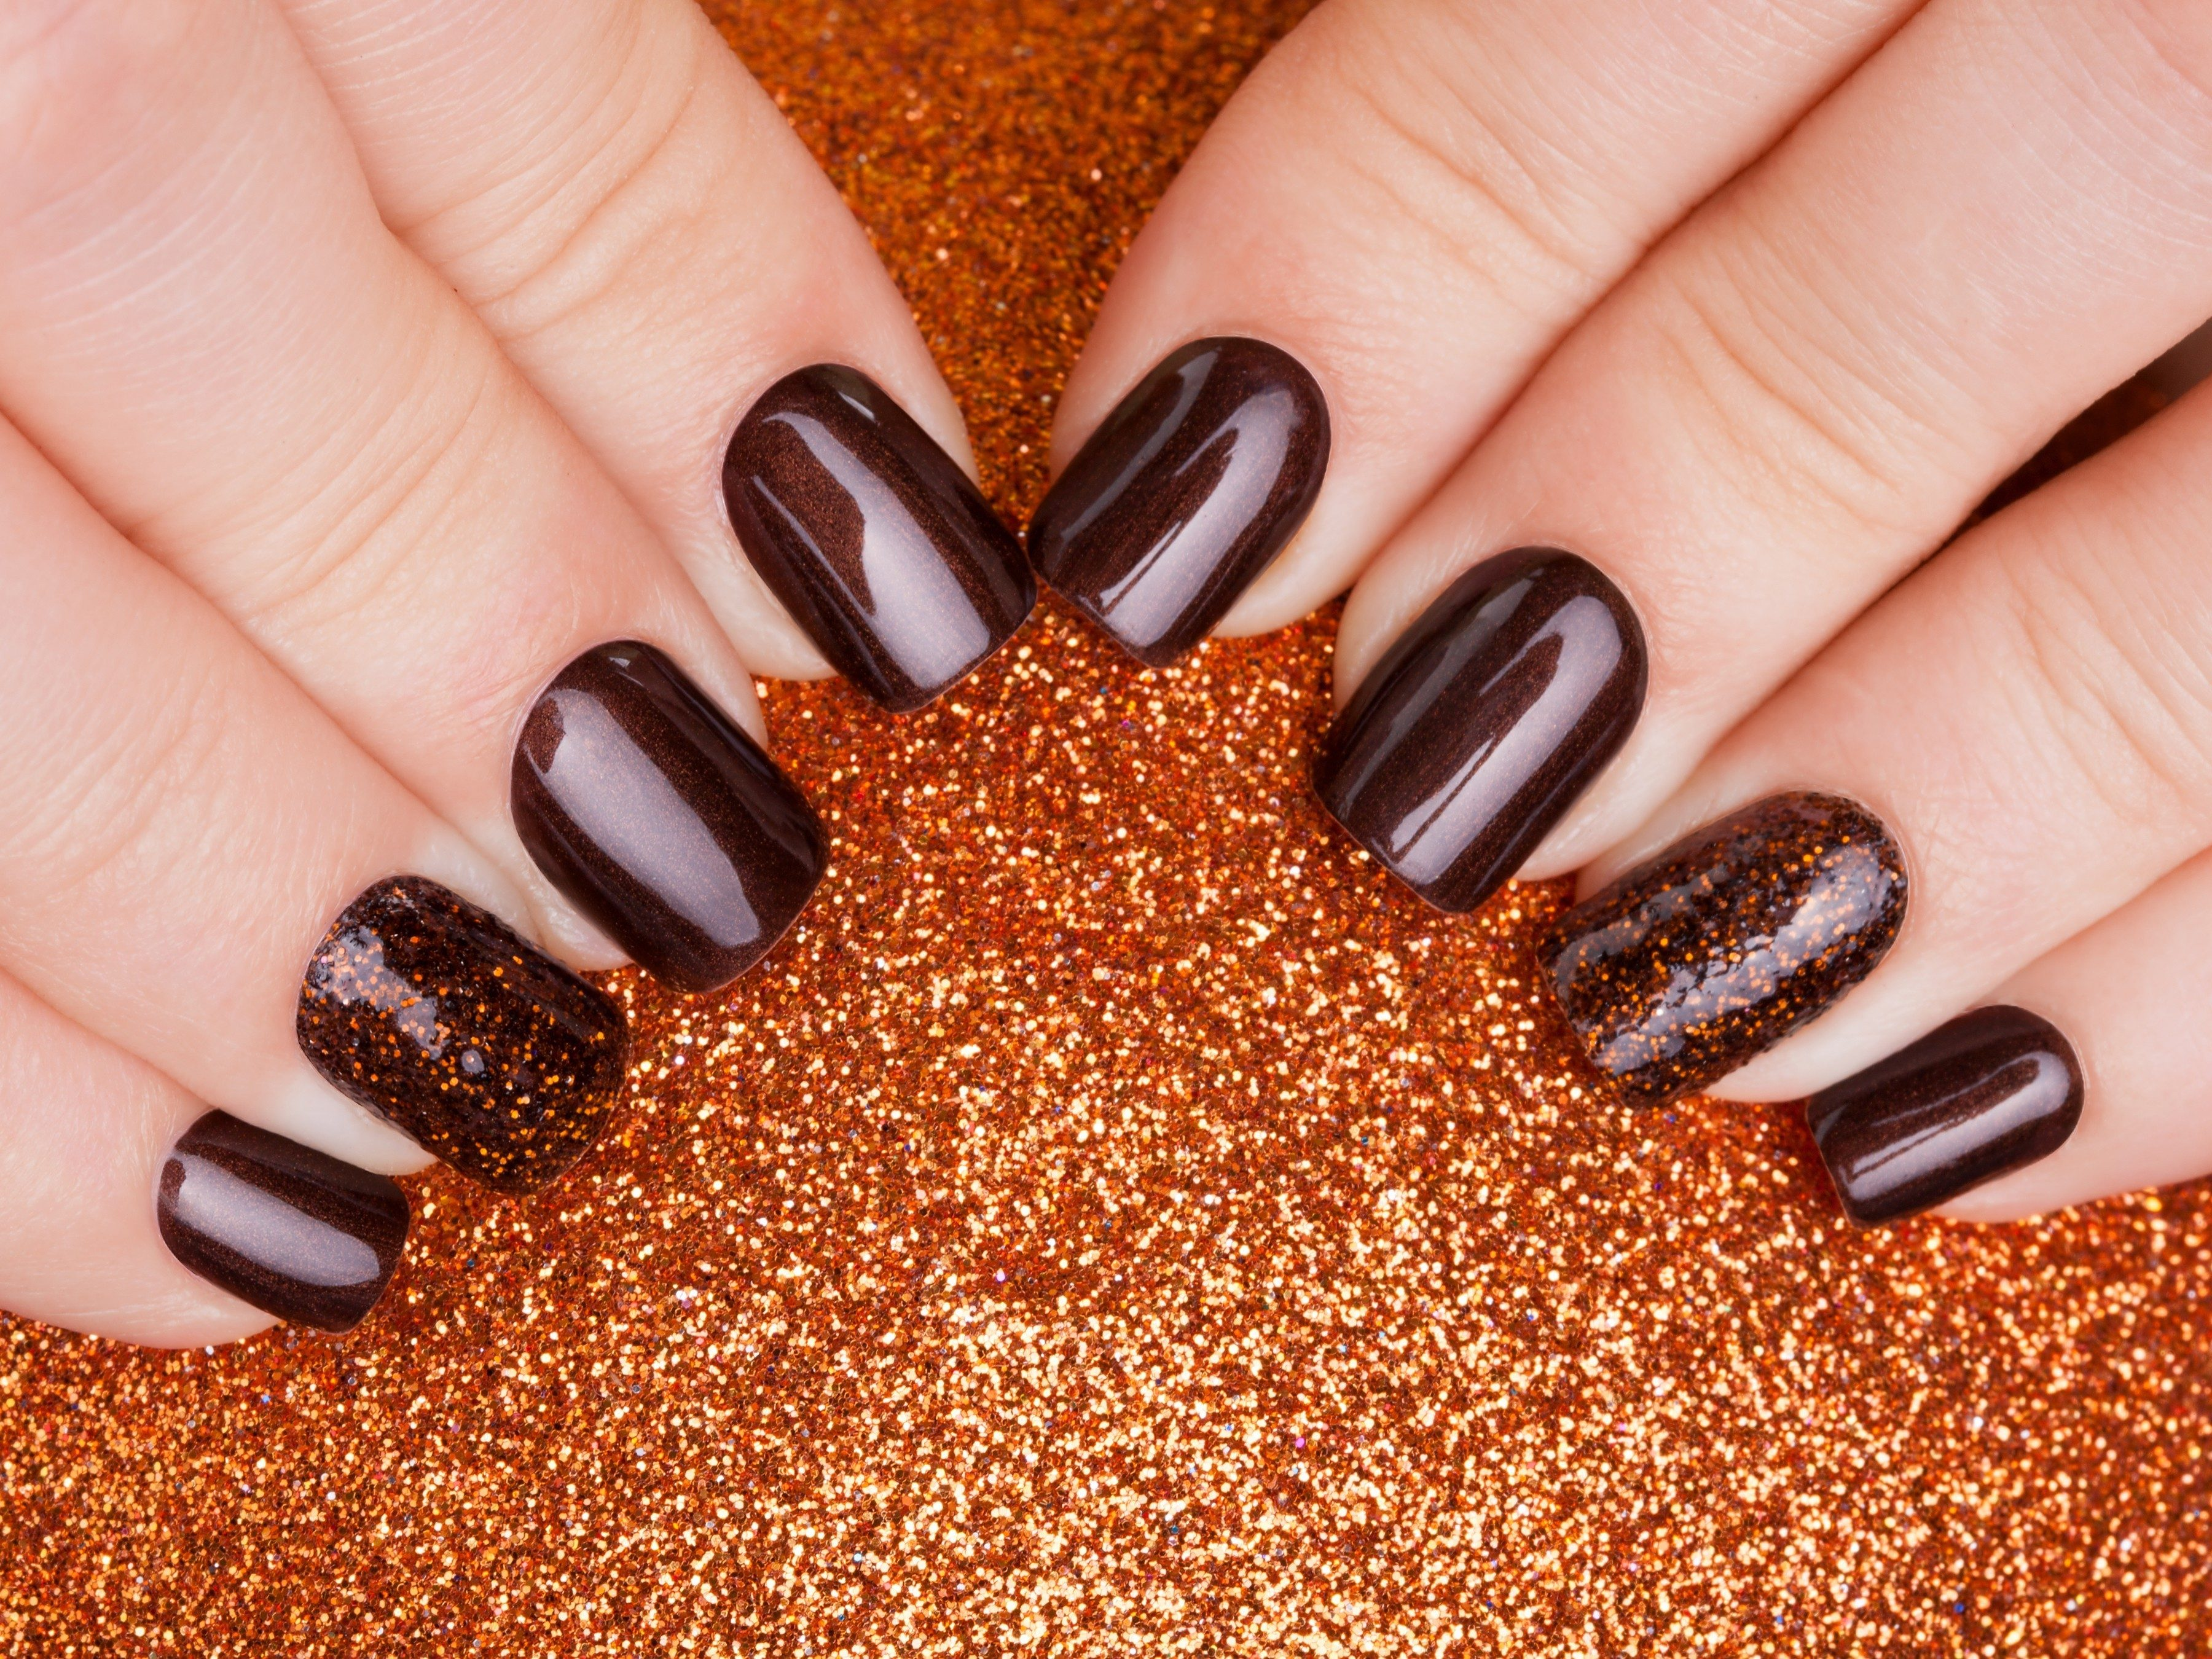 Nail Polish Tip #2: Use Acetate Press-On Nails